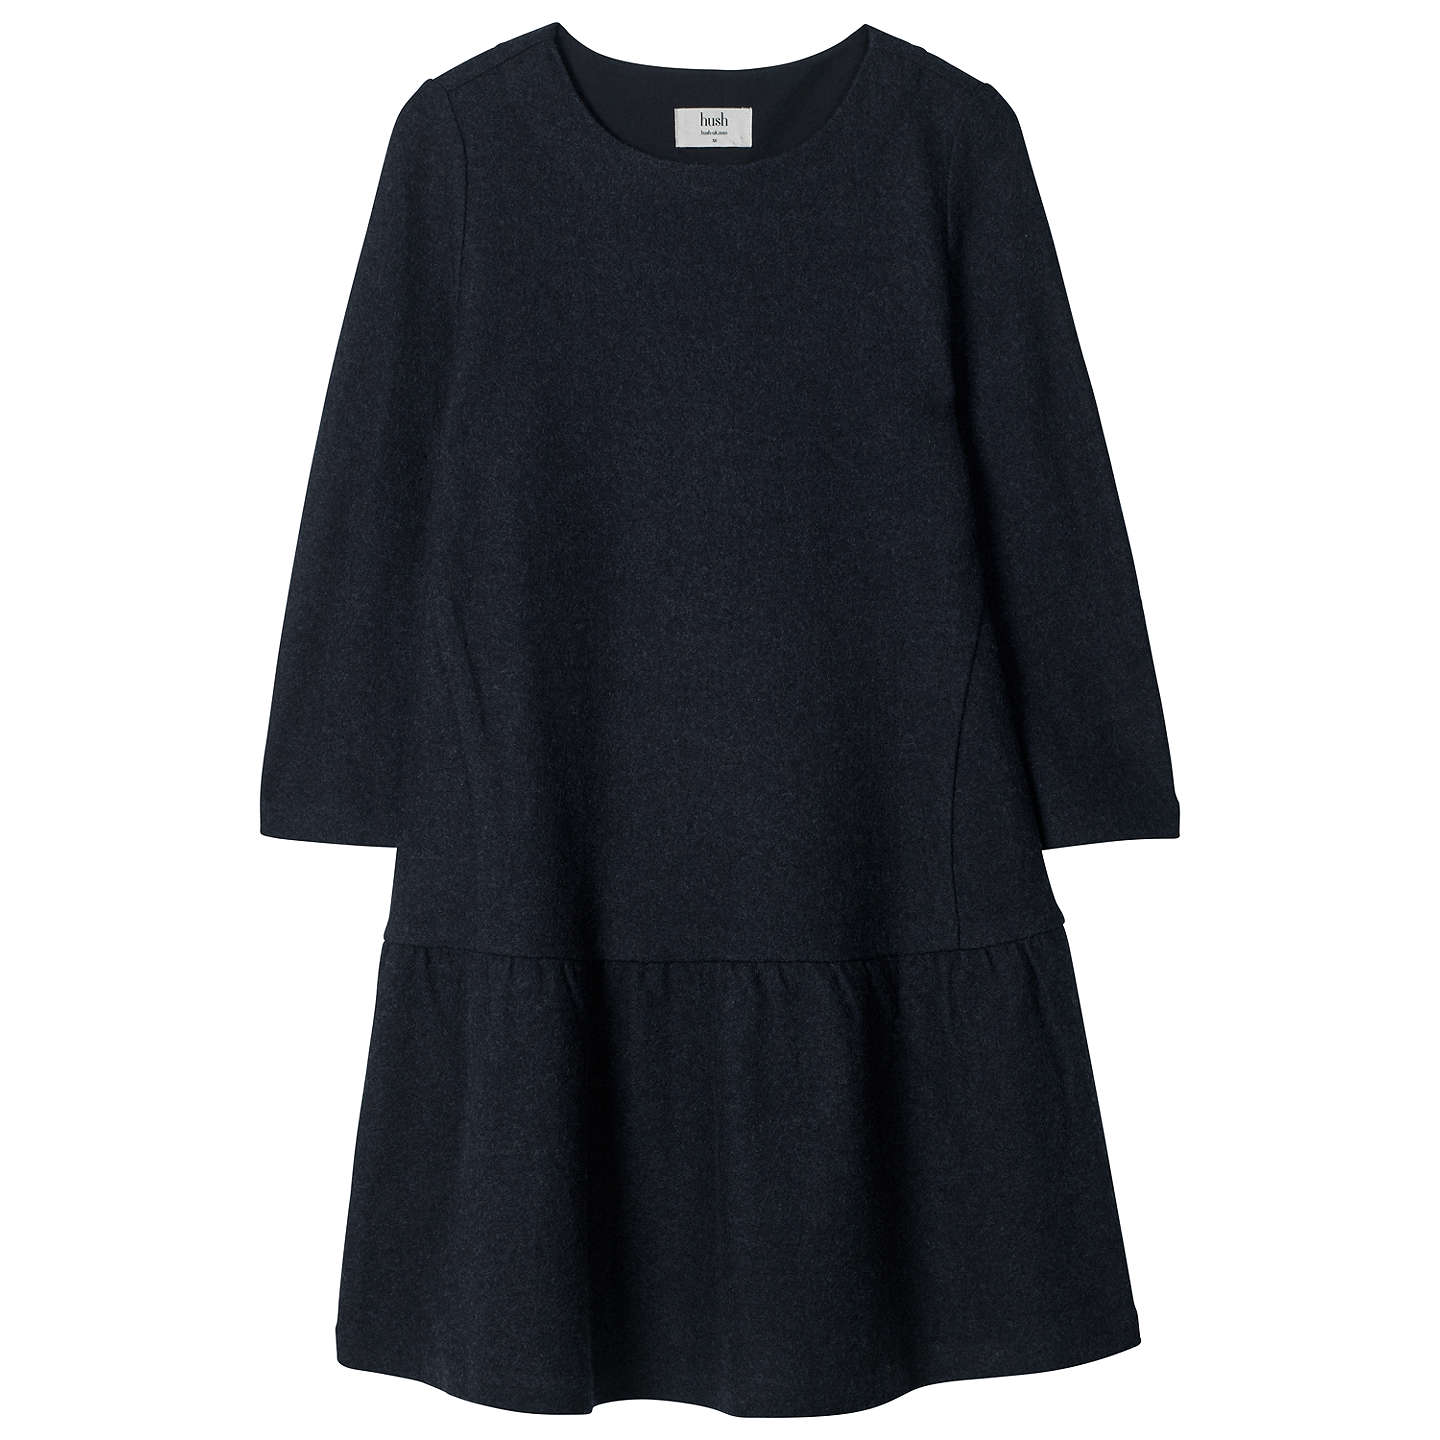 Buyhush Cicely Drop Waist Dress, Midnight, XS Online at johnlewis.com